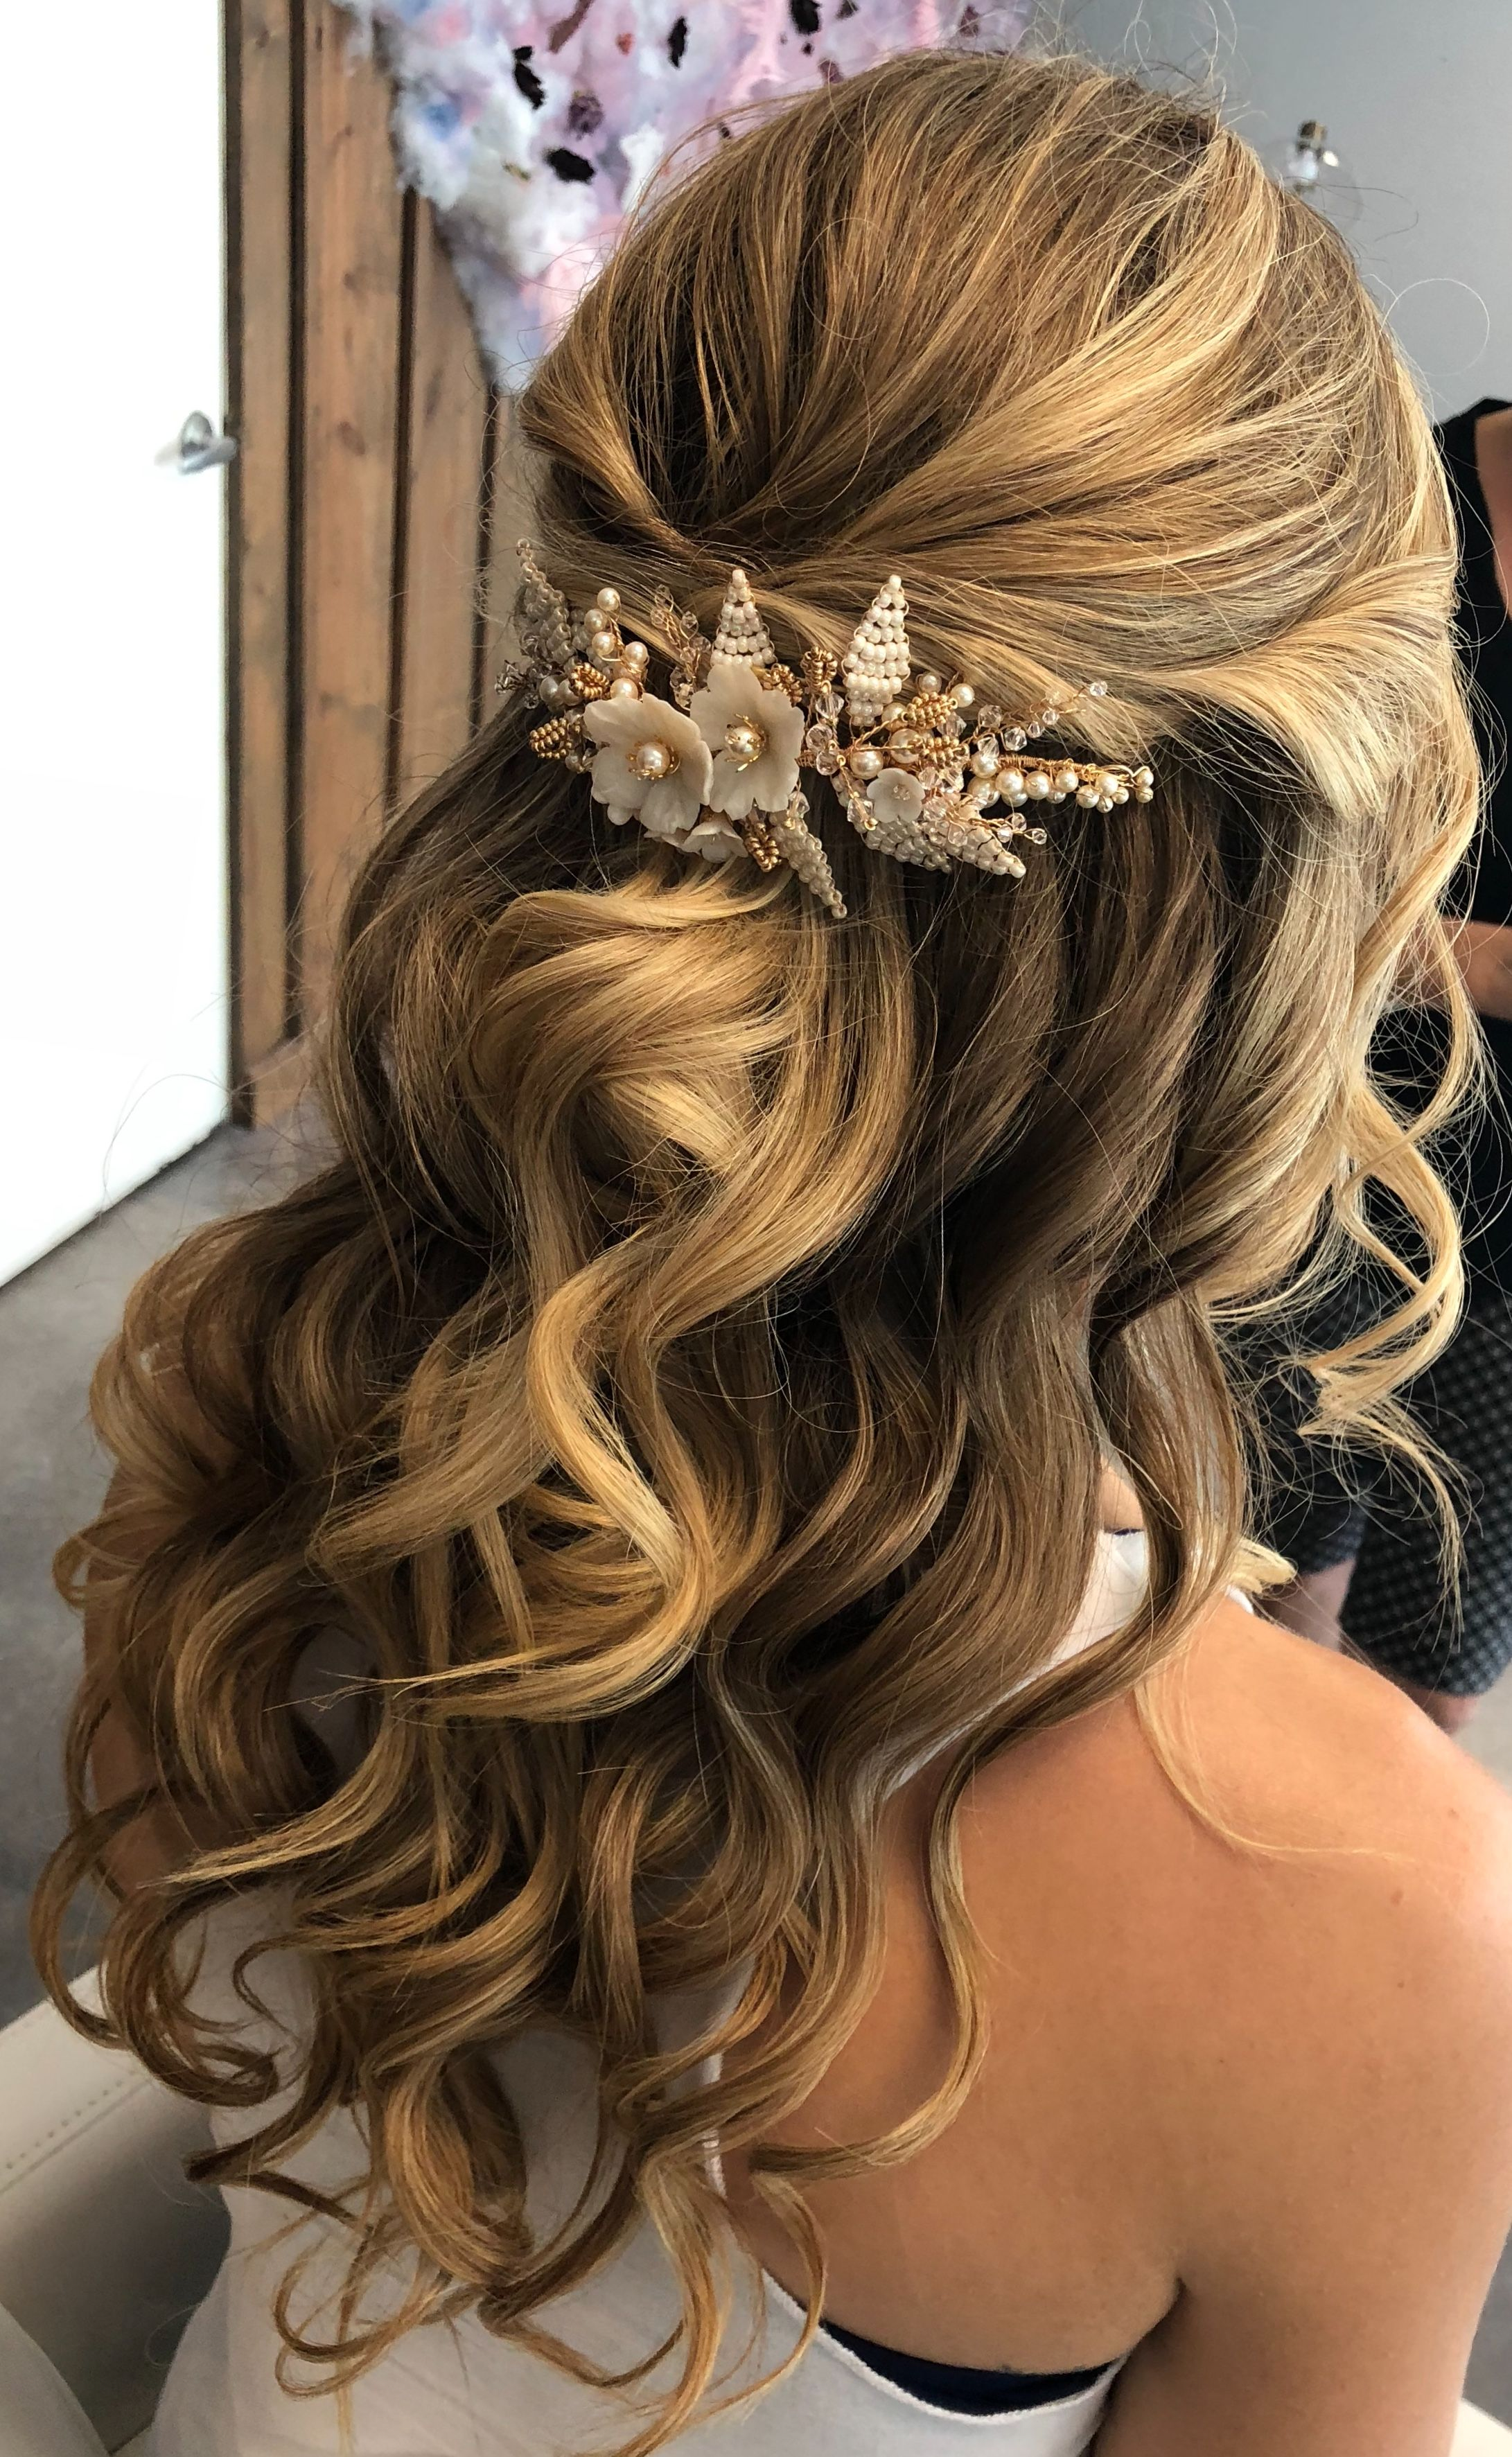 half up half down bridal hair style with hair accessory from